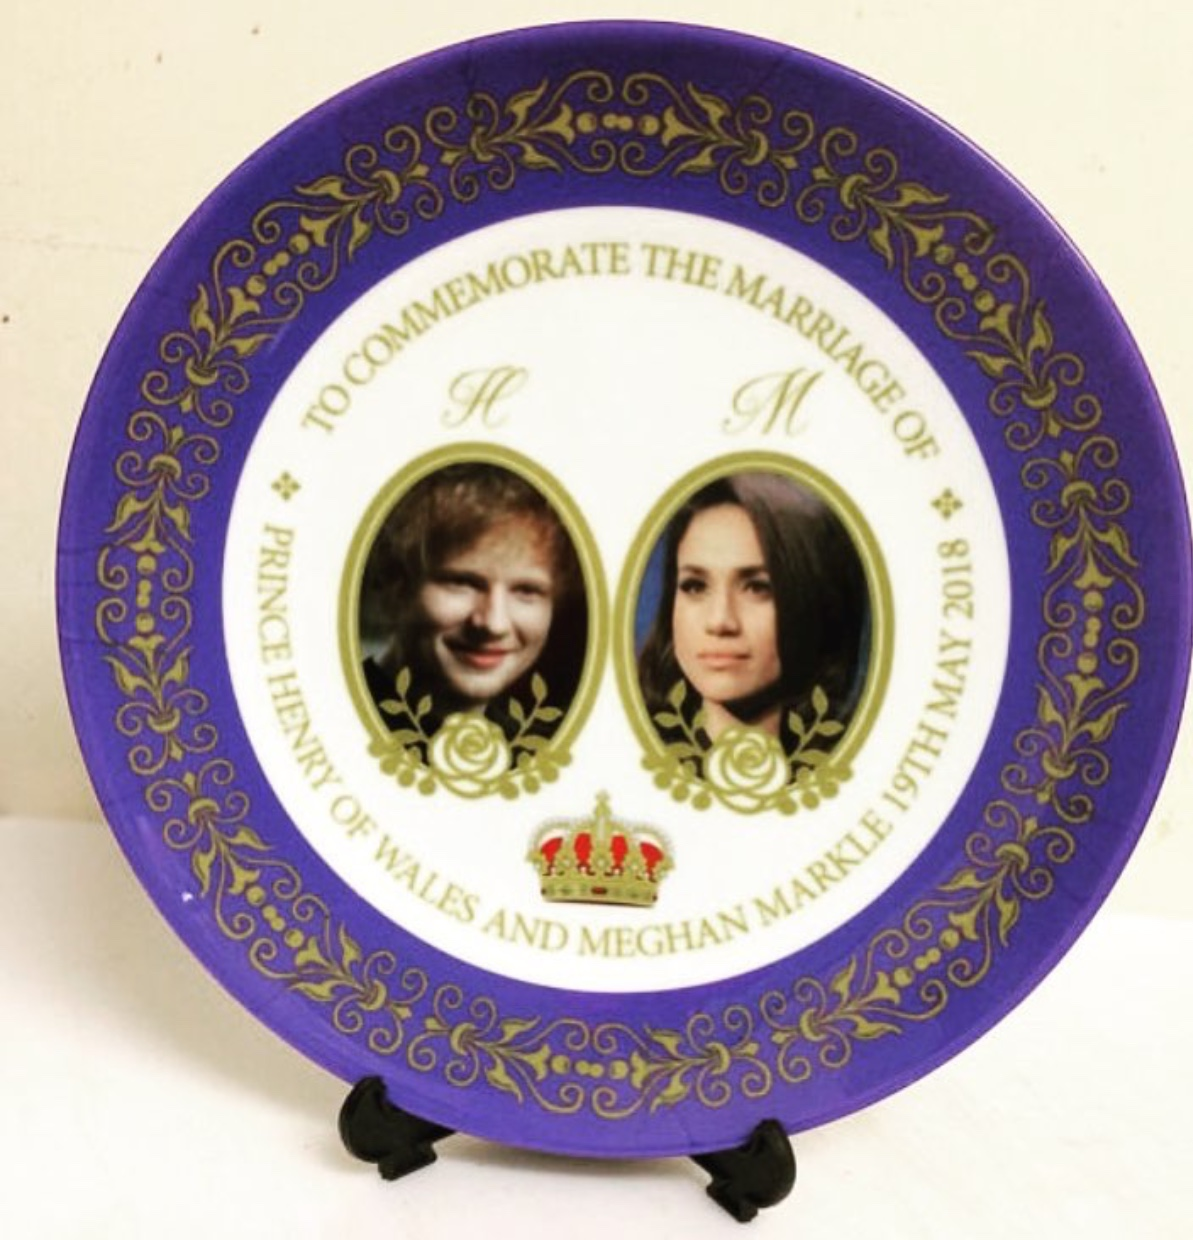 The plate with Meghan Markle for the Royal Engagement